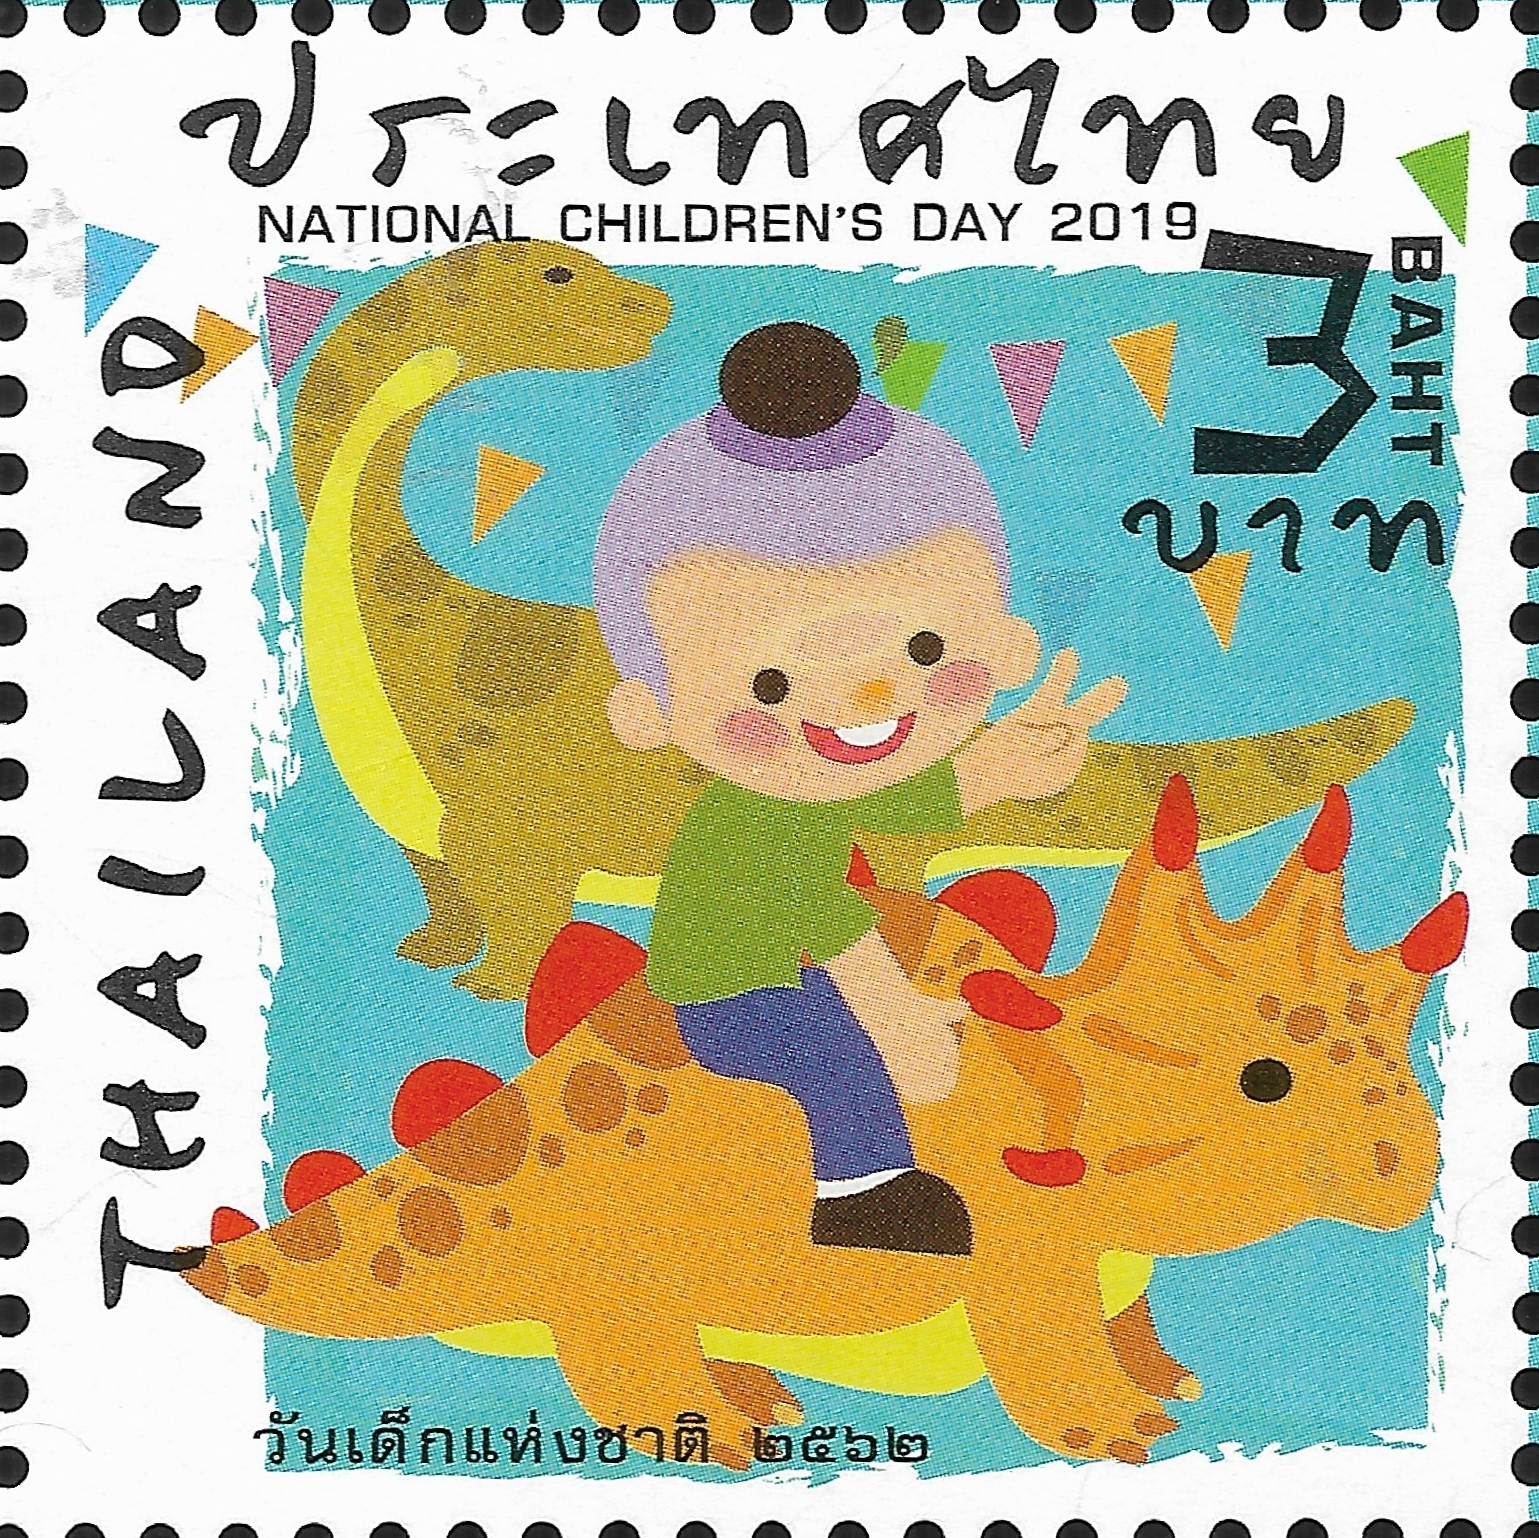 Thailand - Thailand Post #TH-1163 design 1 (January 12, 2019)